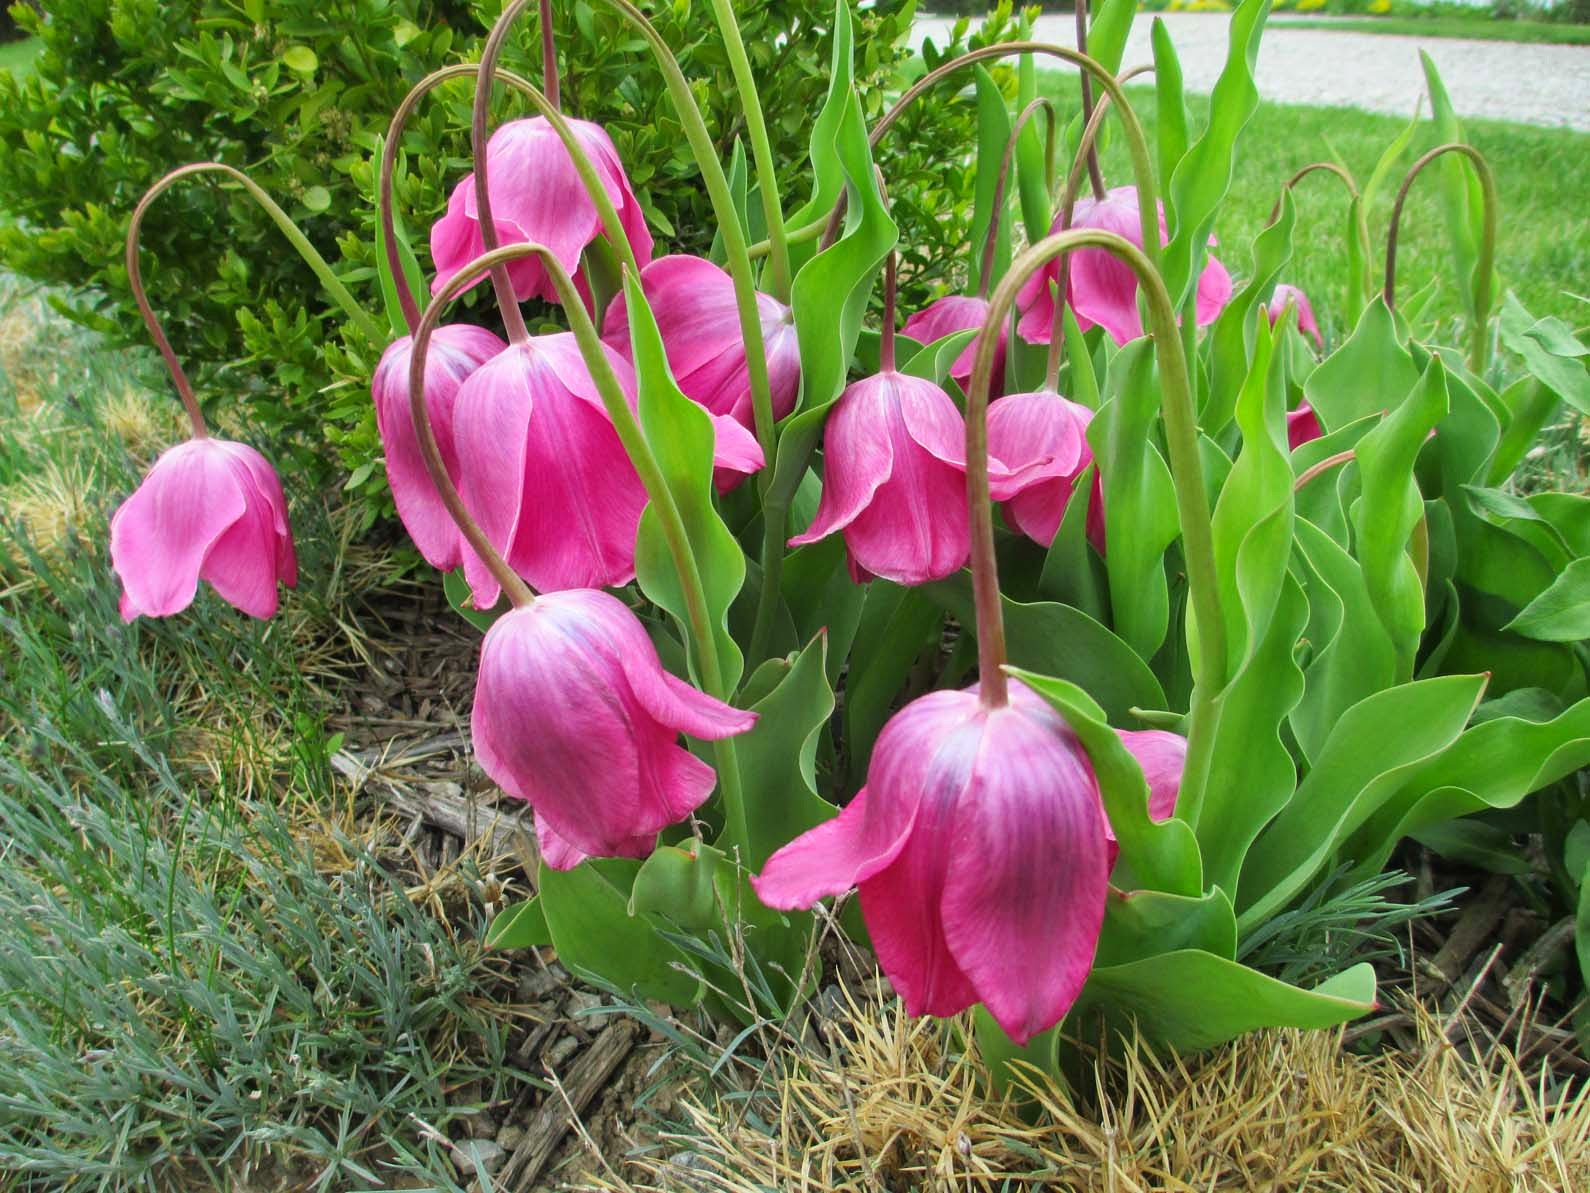 Garden Fancy The Mystery Of The Droopy Headed Tulips